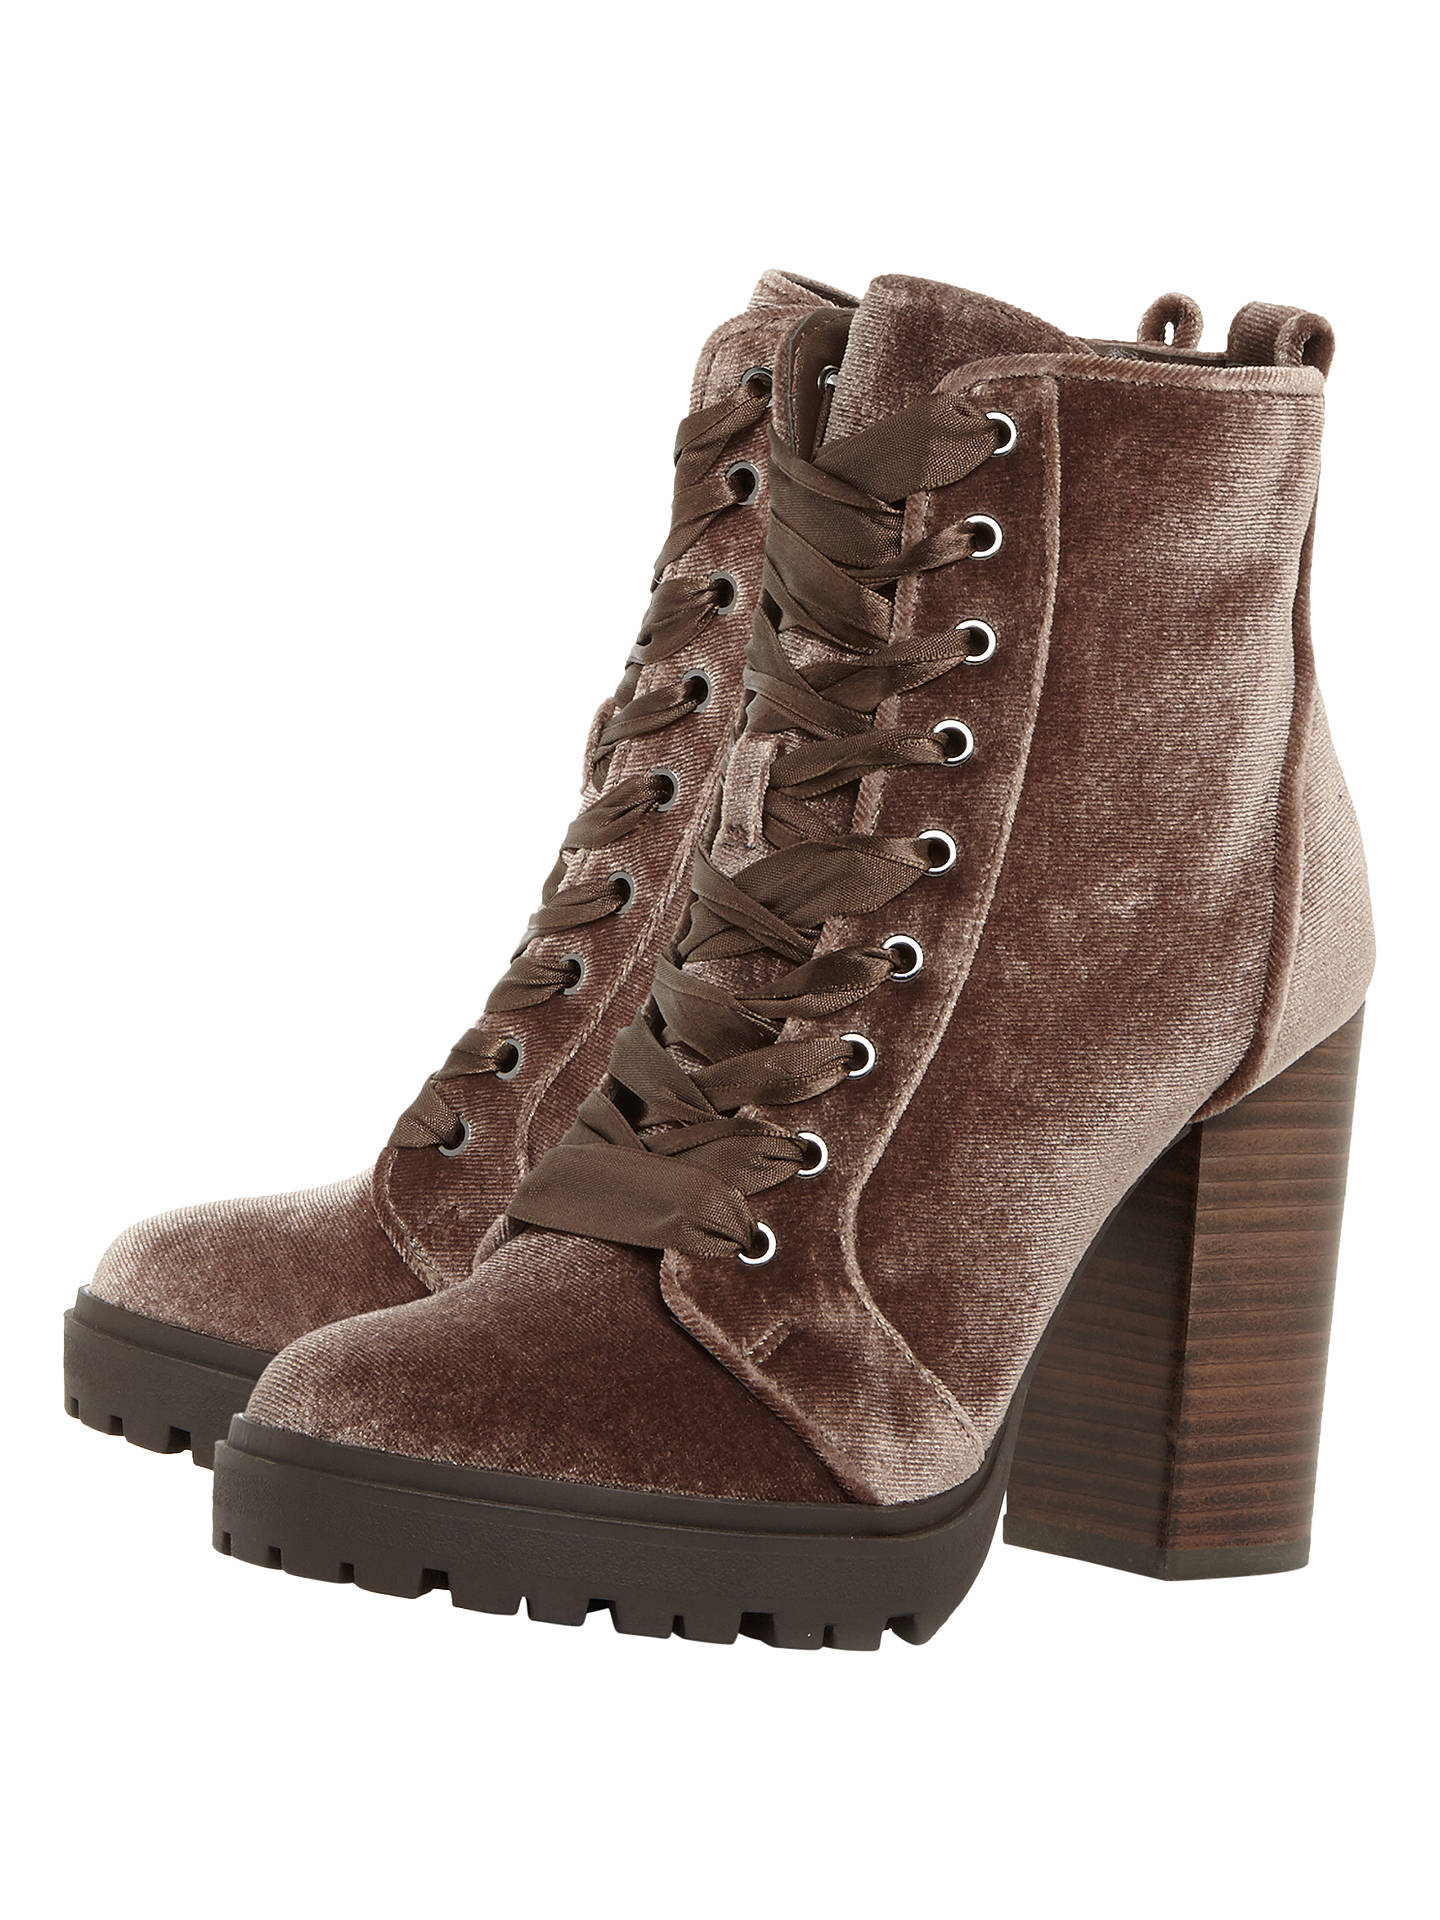 13c2d72a1fd Steve Madden Laurie Lace Up Block Heeled Ankle Boots, Taupe Velvet ...